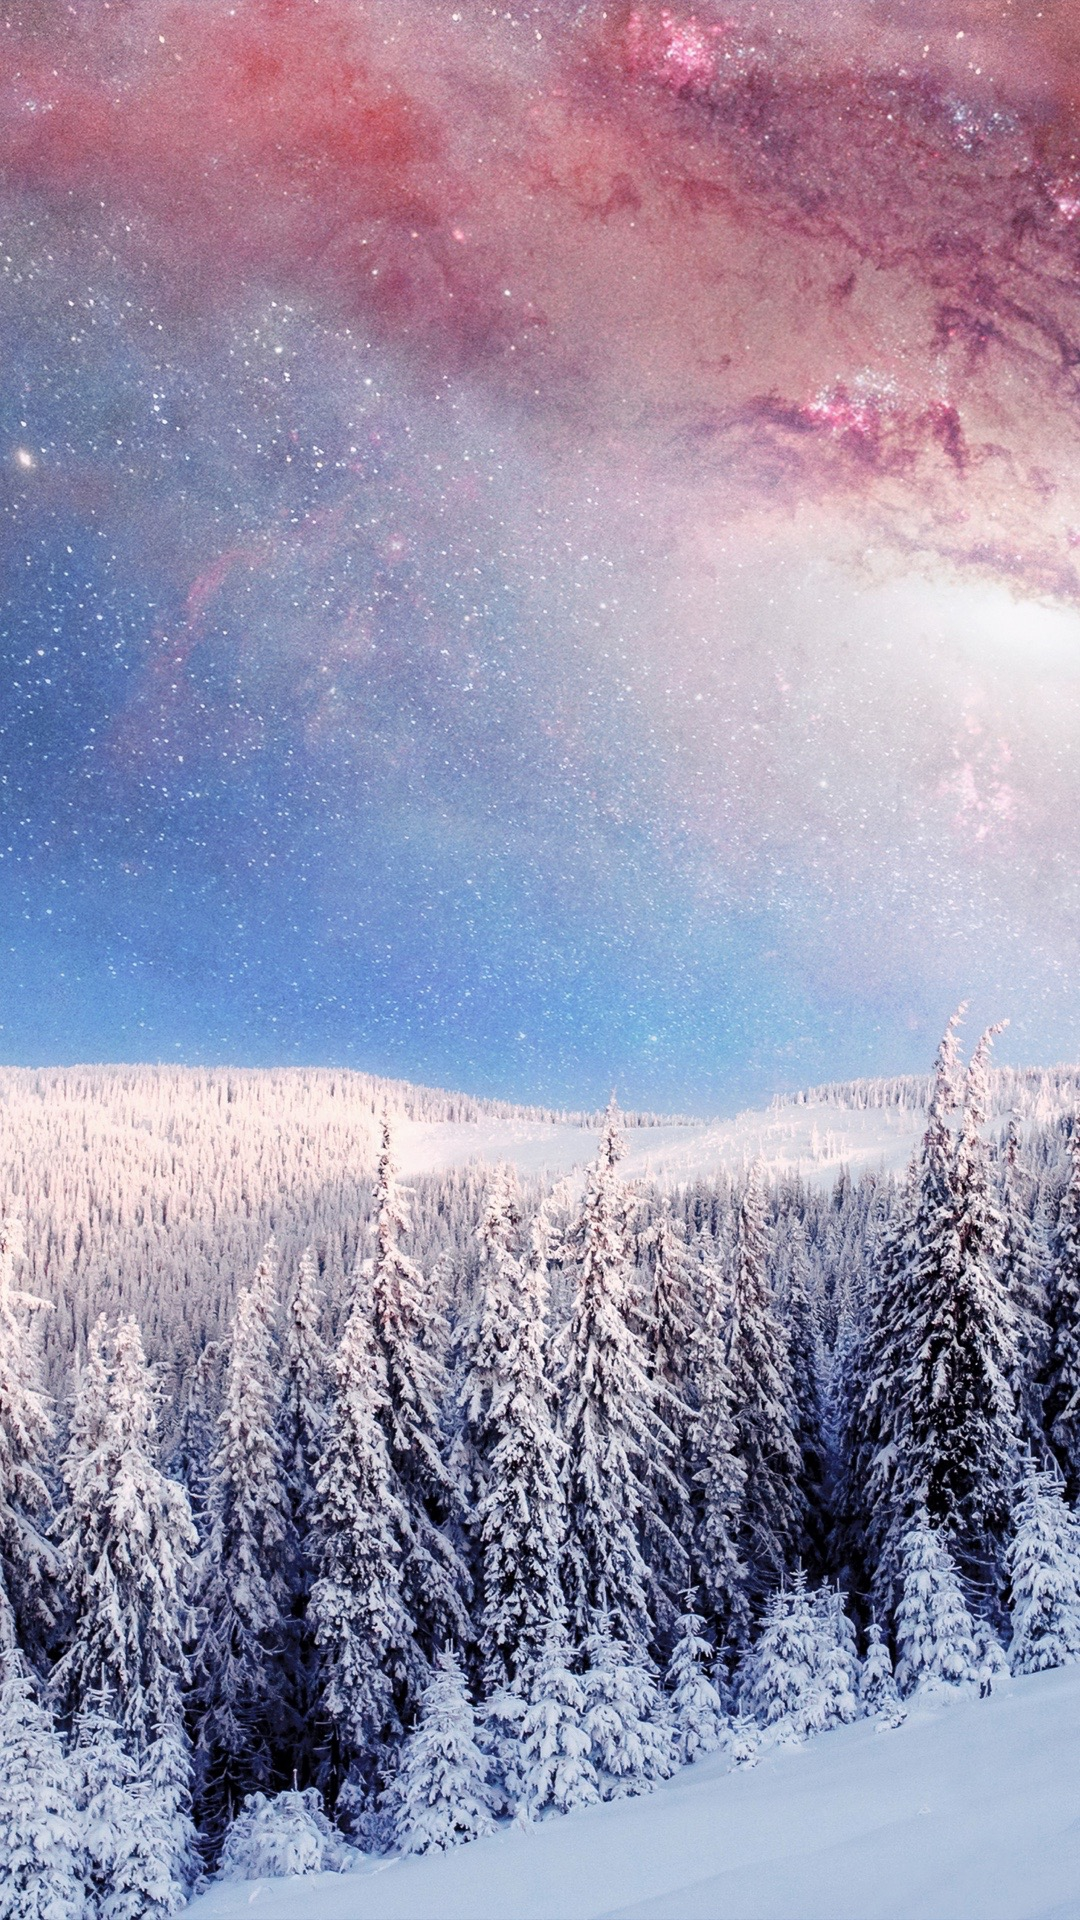 Cute Halloween Ipad Wallpaper Winter Forest Galaxy From Earth Iphone Wallpaper Iphone